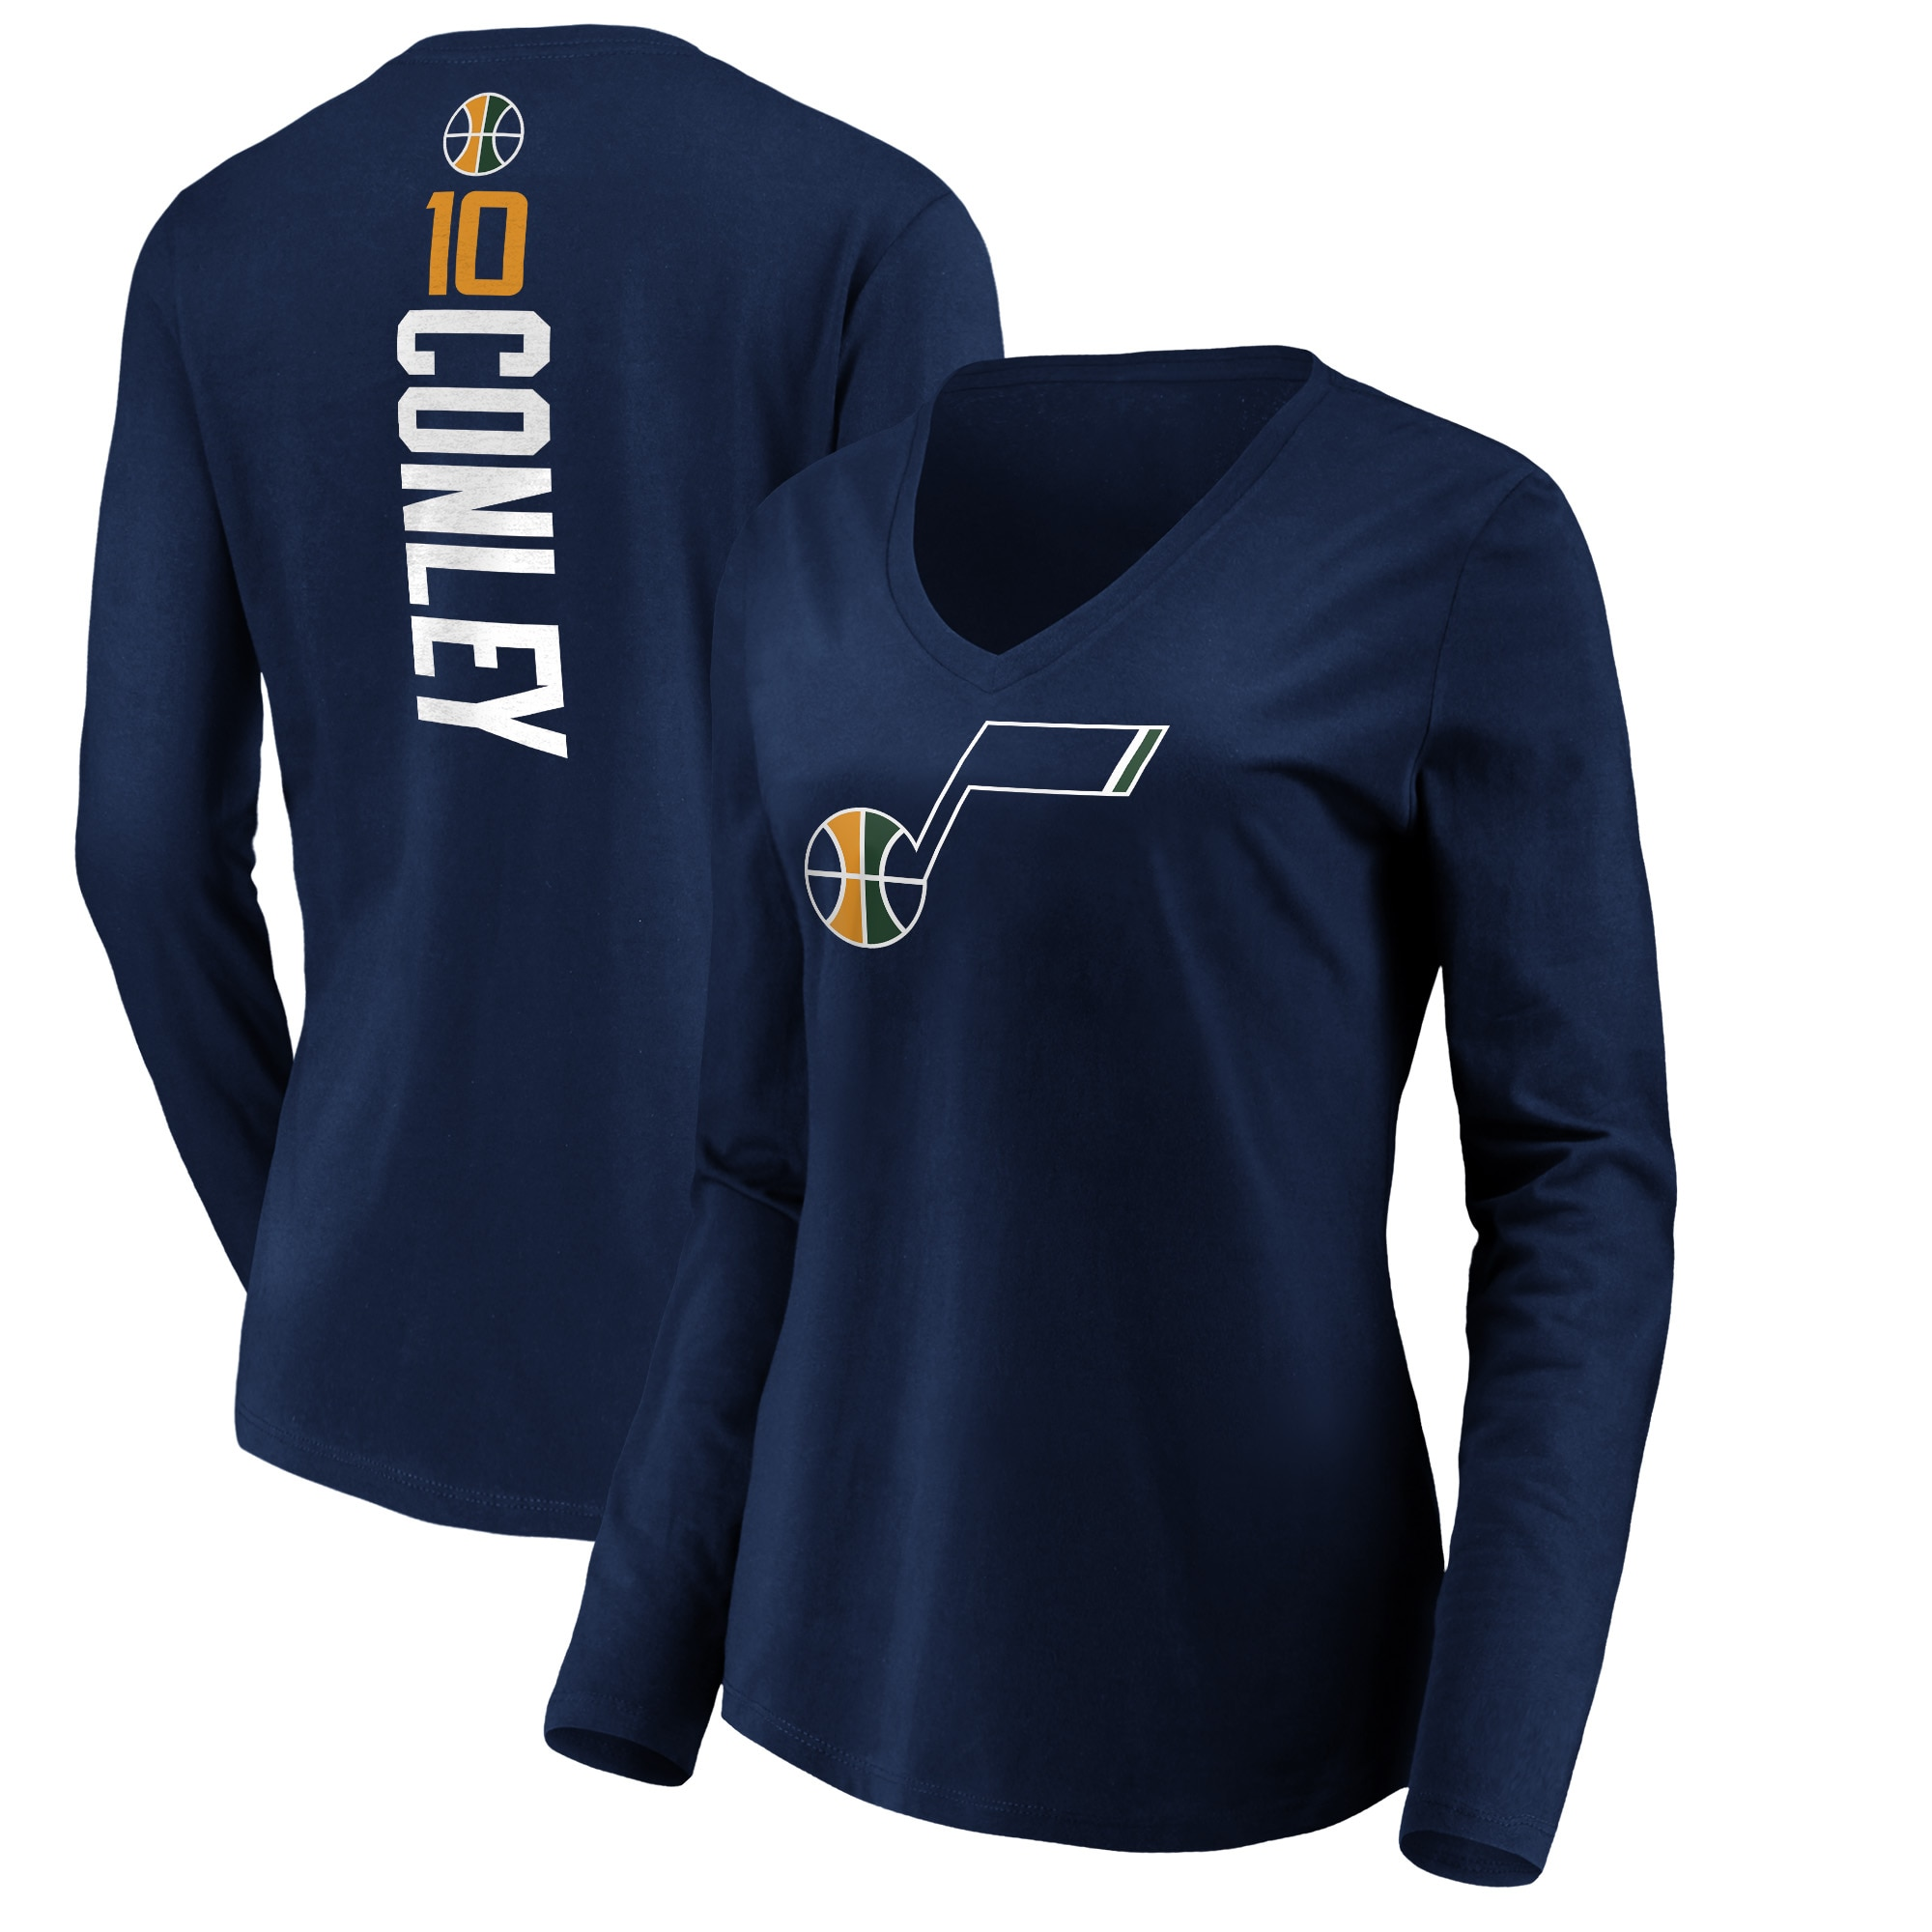 Mike Conley Utah Jazz Fanatics Branded Women's Playmaker Name & Number Long Sleeve T-Shirt - Navy